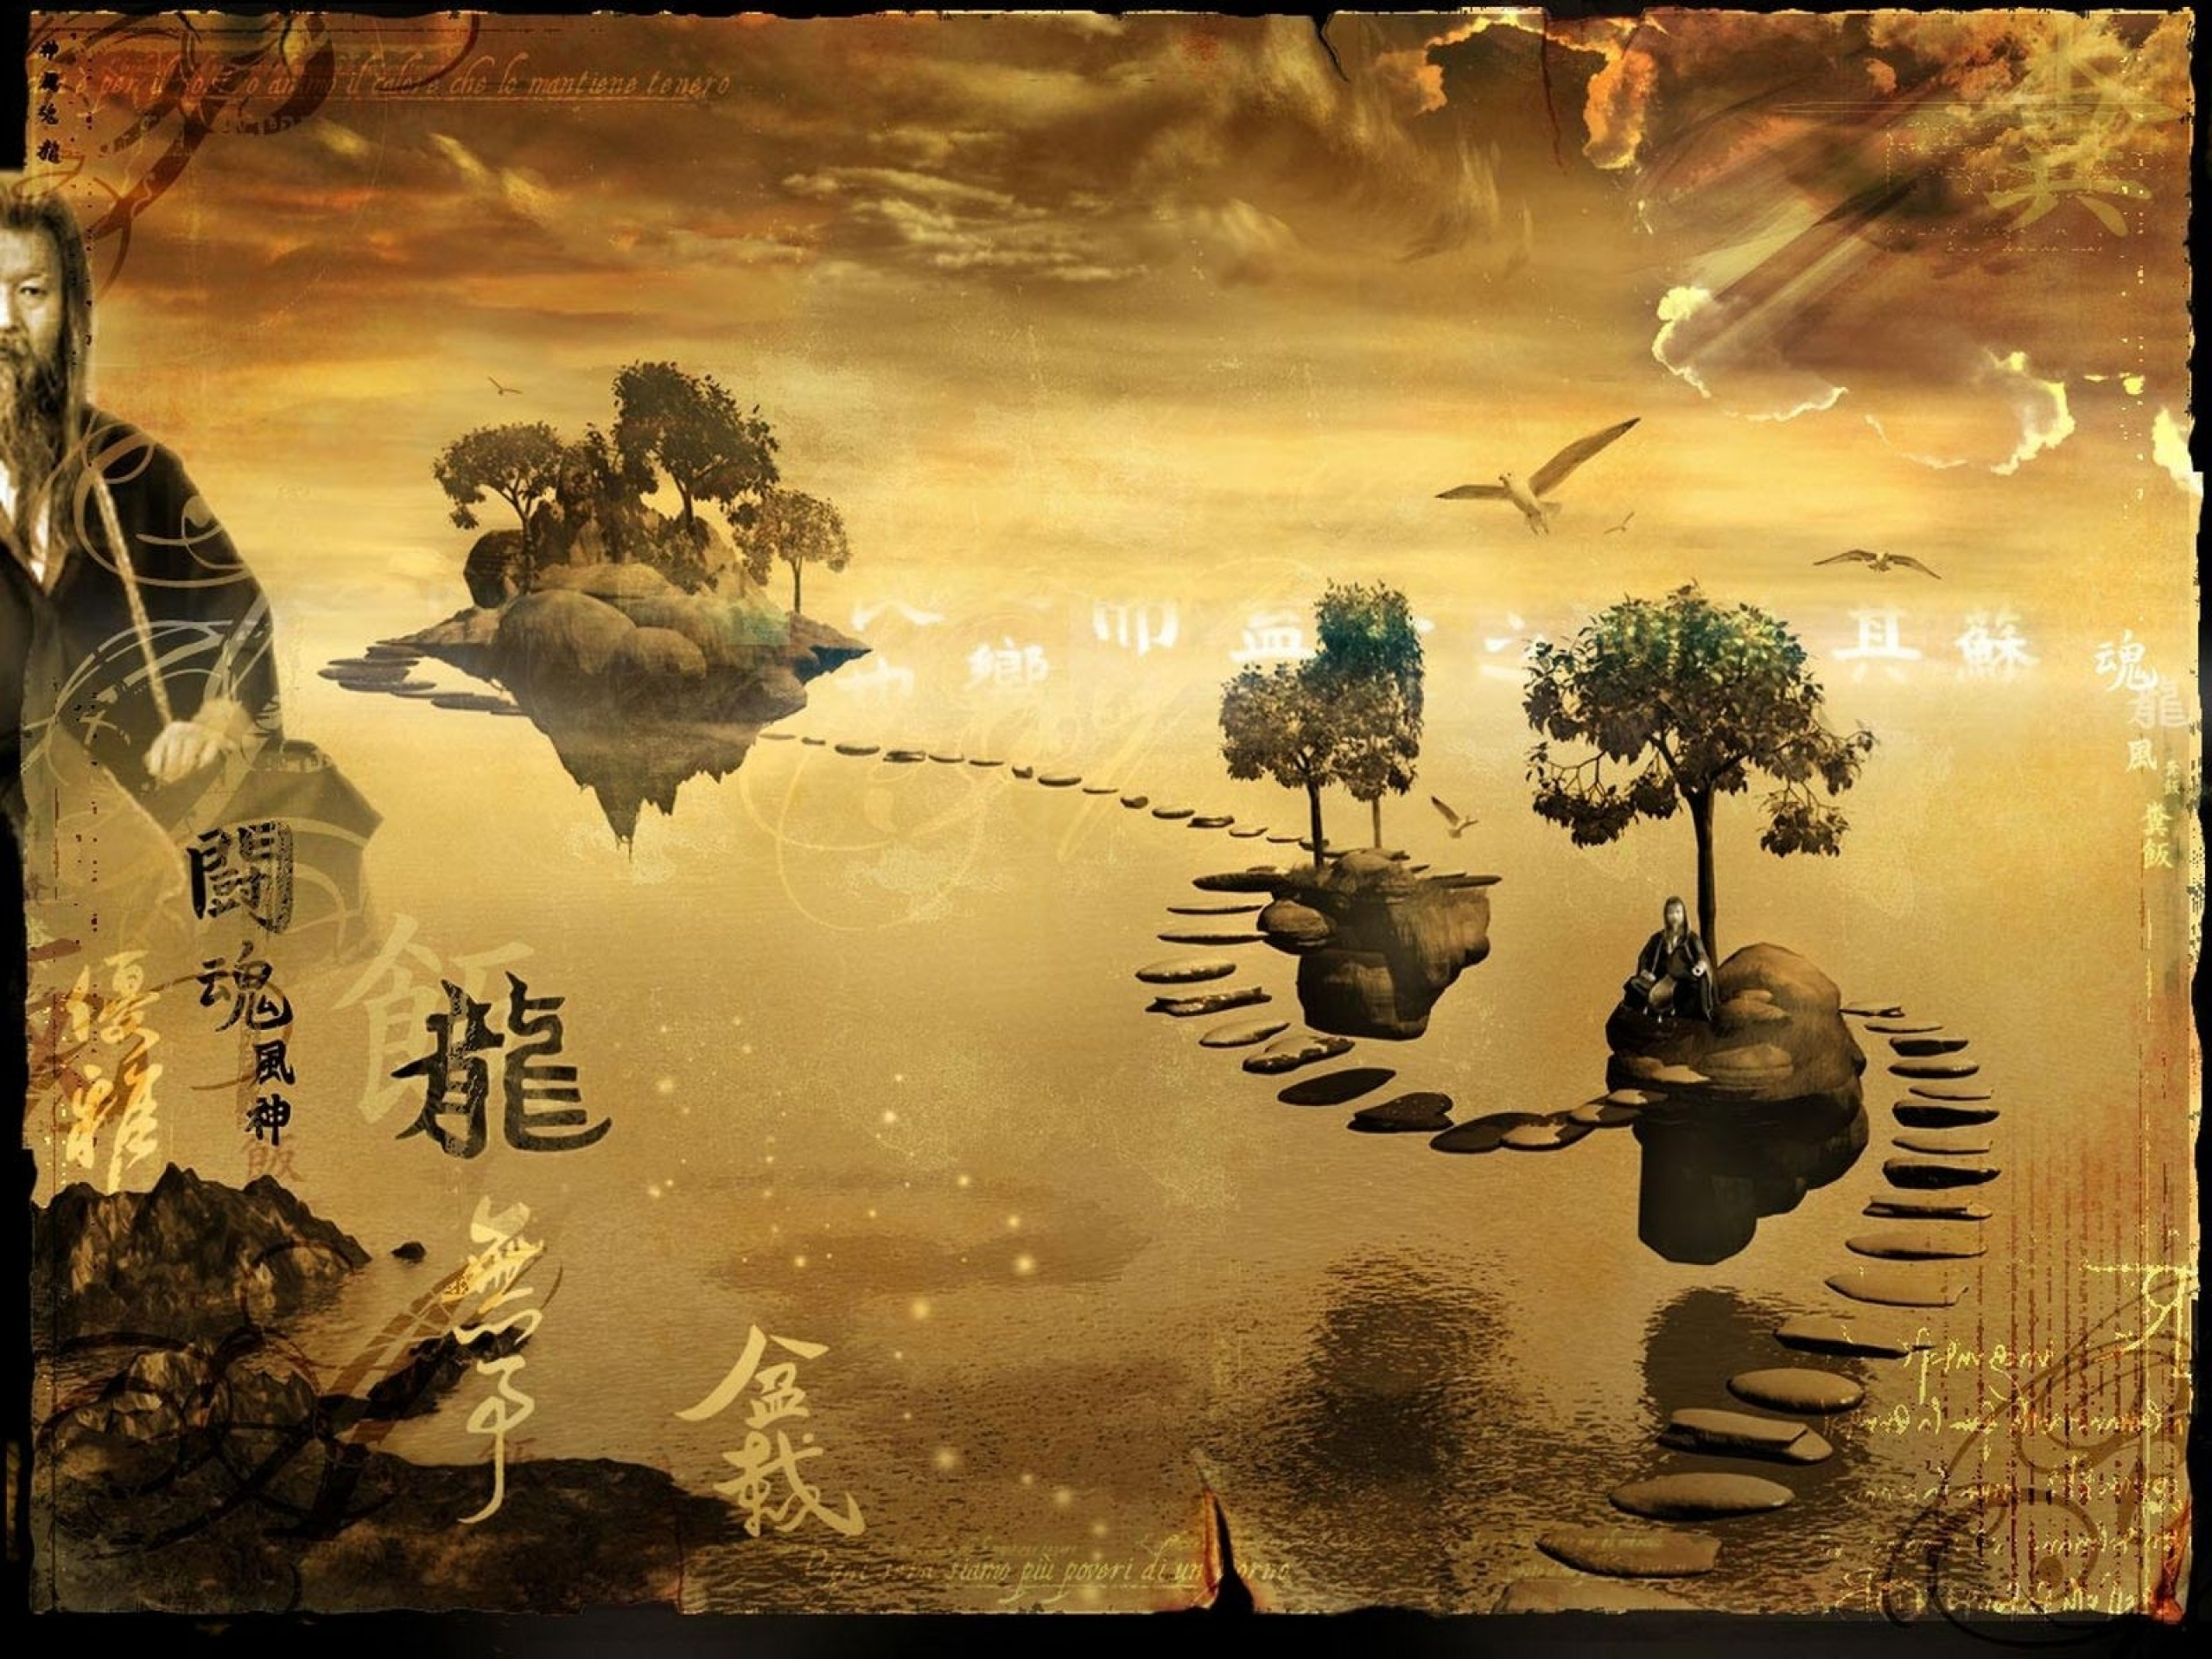 chinese painting wallpapers android - photo #21